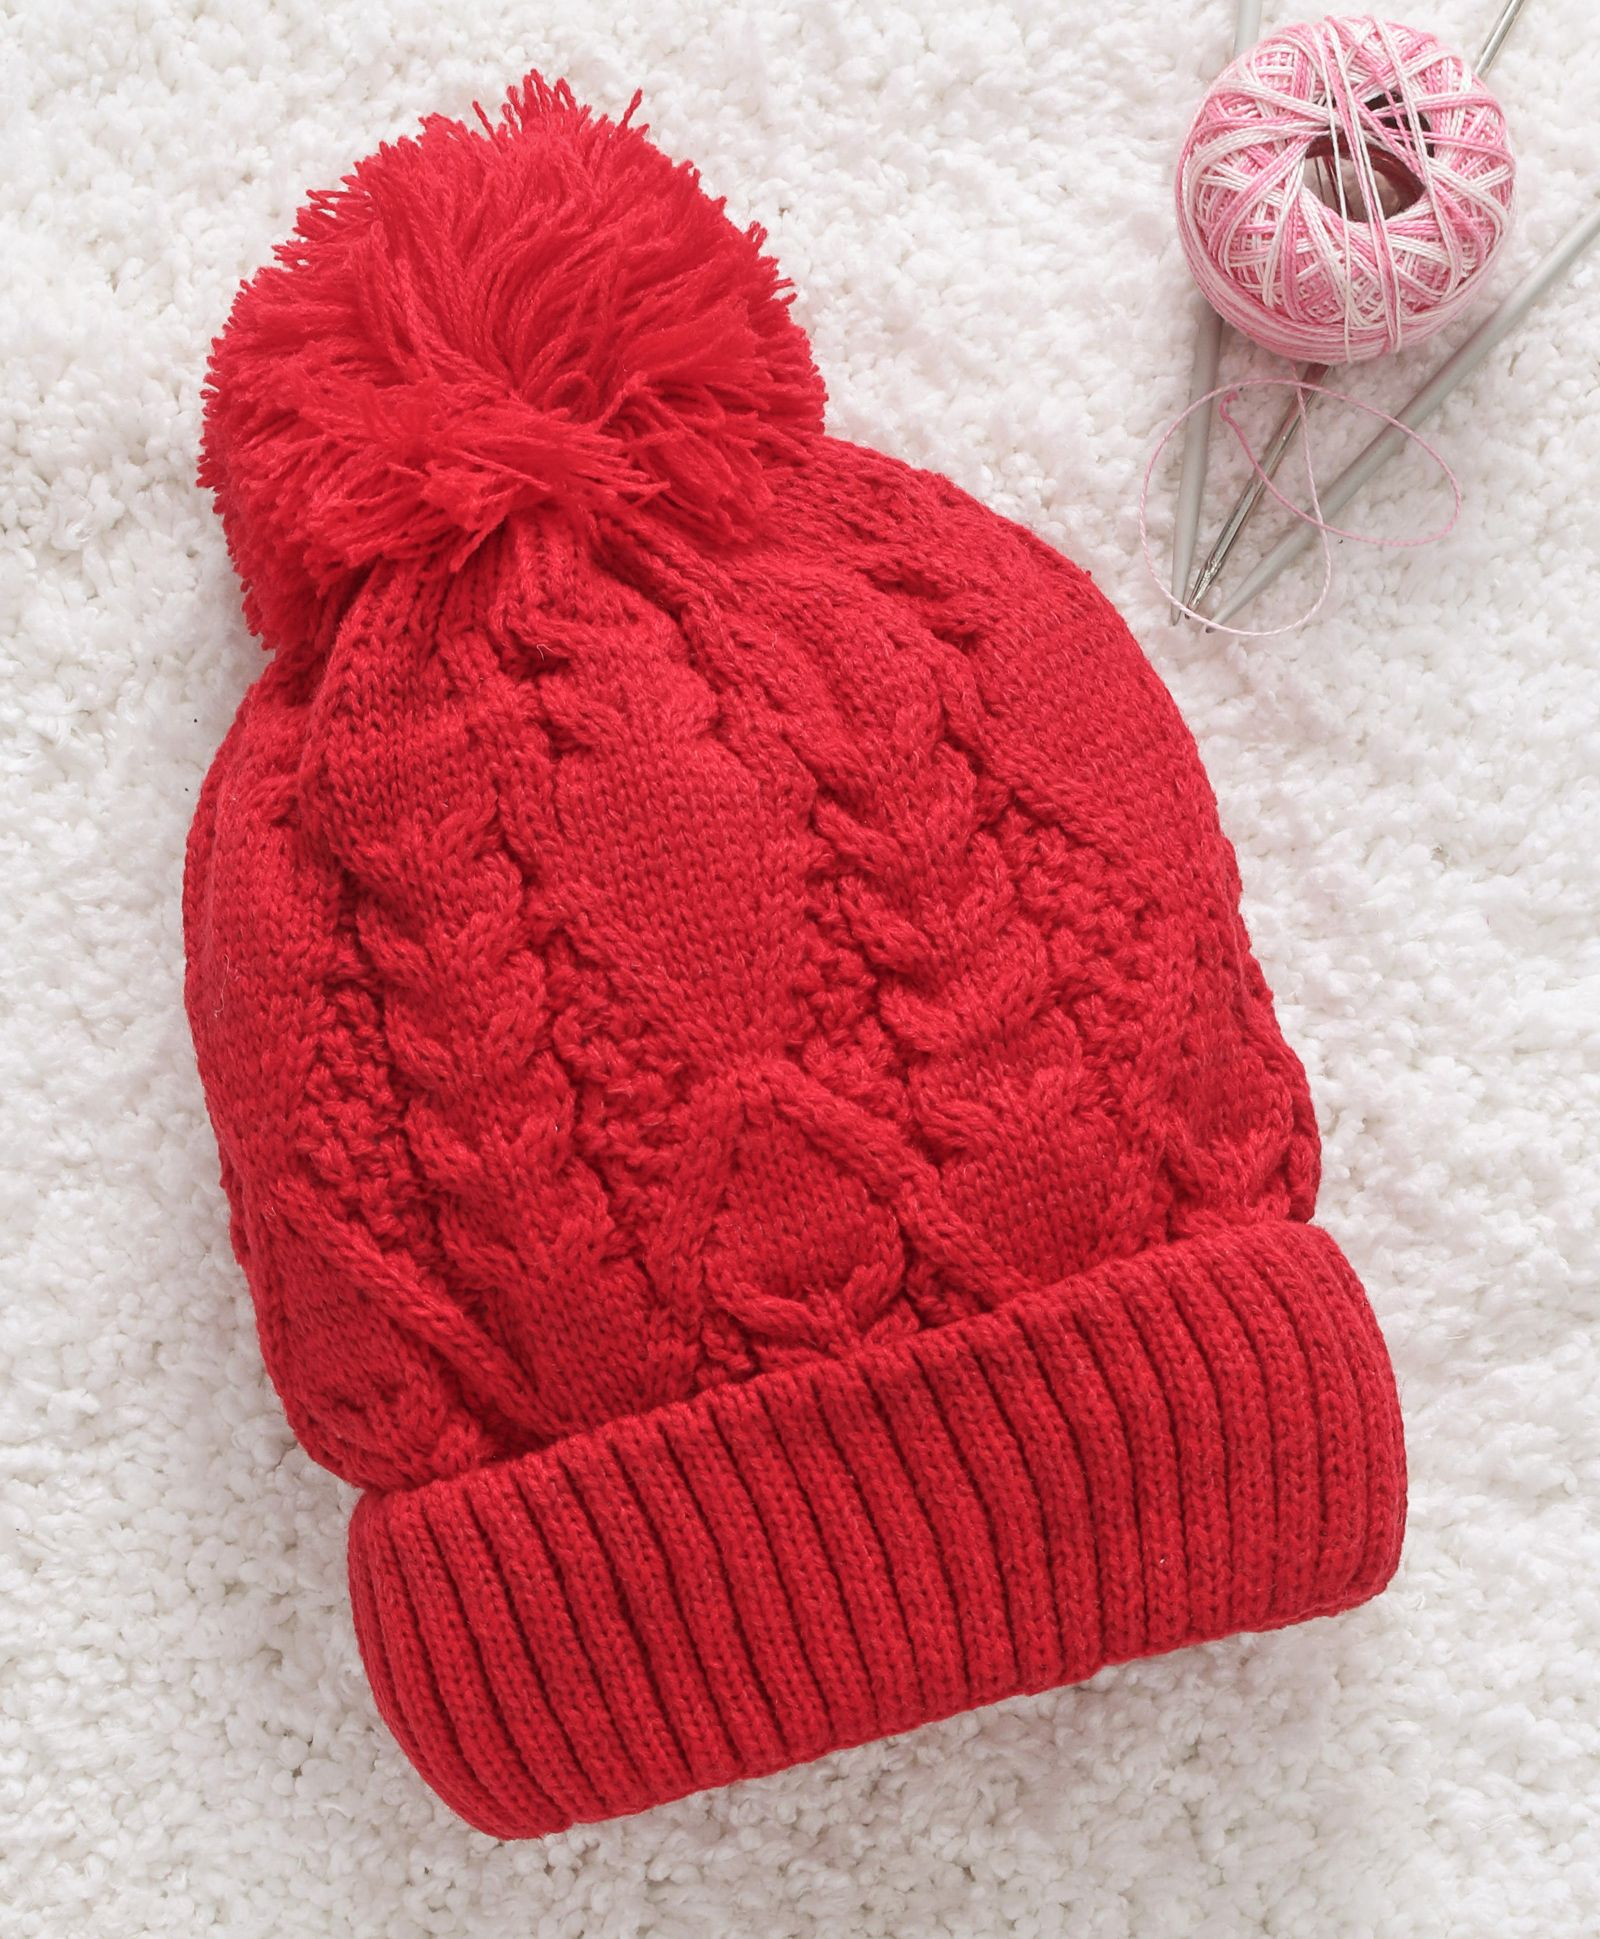 bc1393f44d5 Babyhug Woollen Cap With Pom Pom Red Online in India